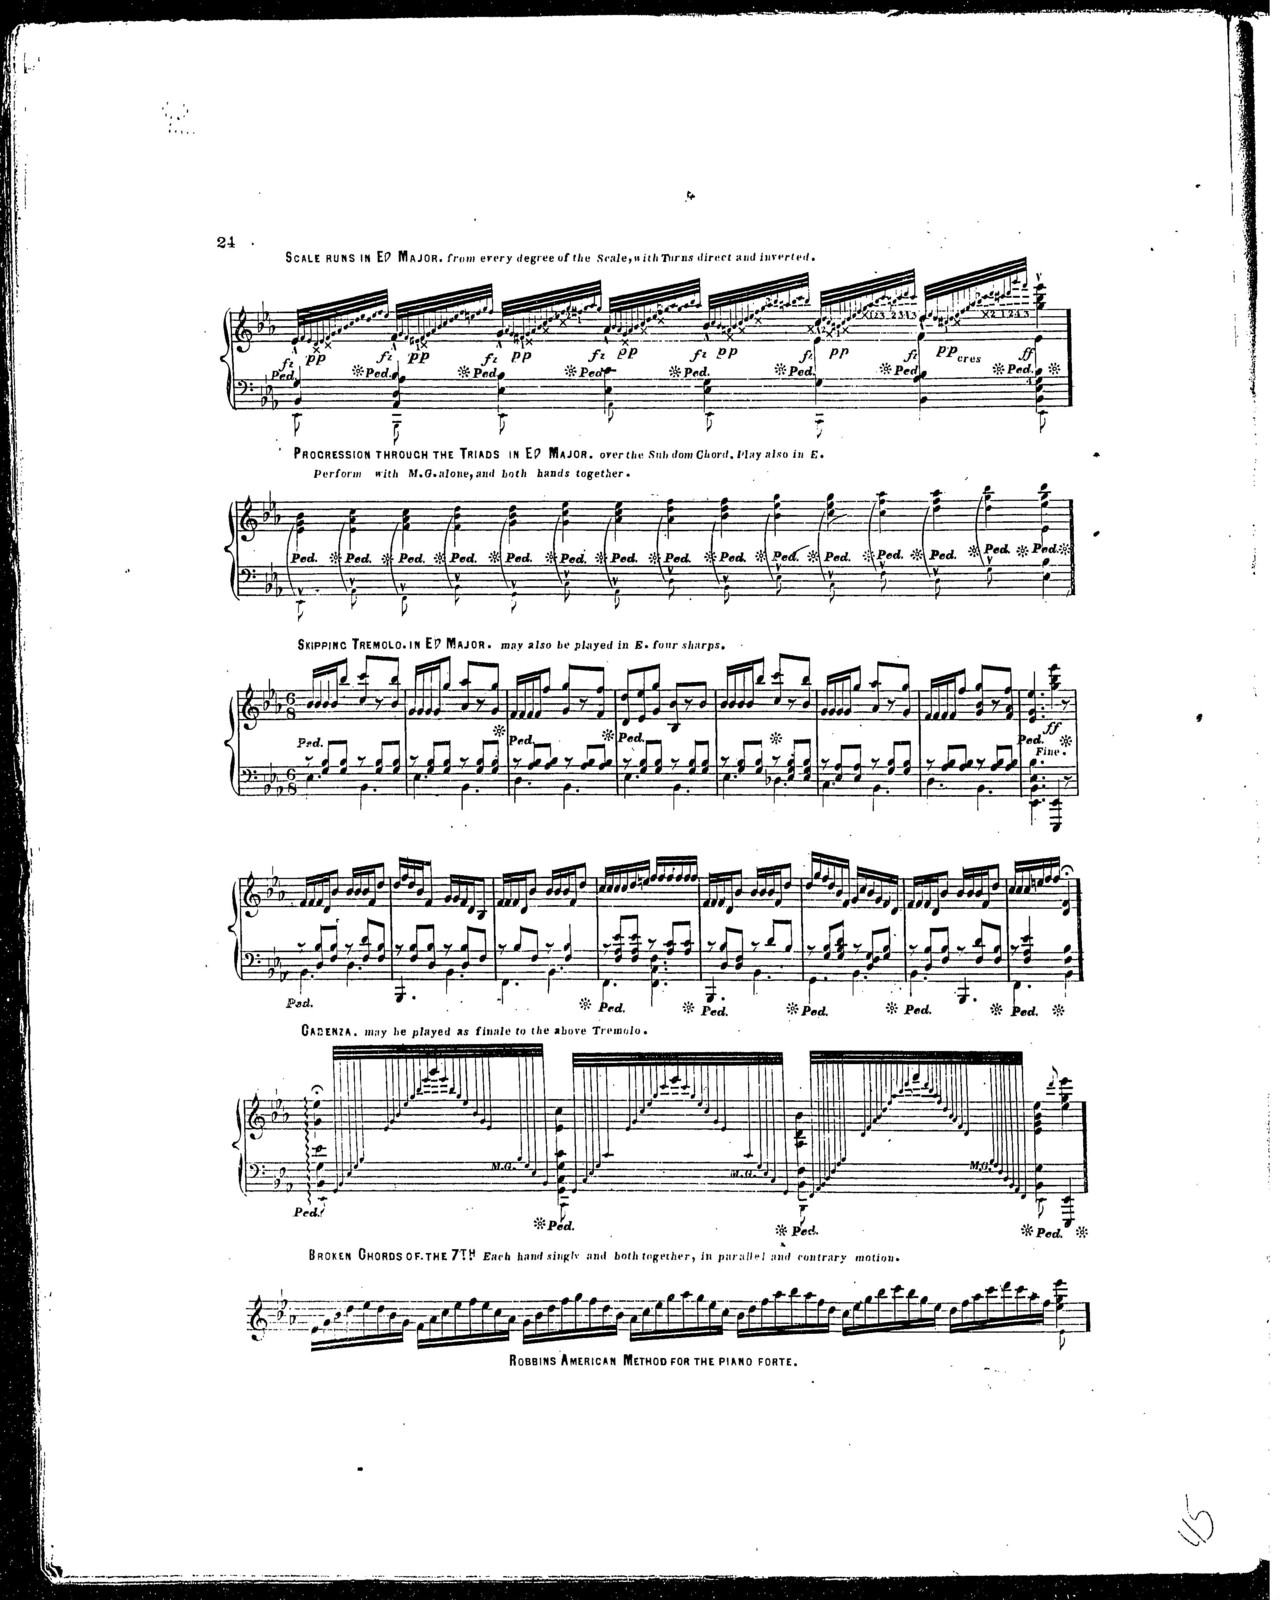 American Method for the piano forte | PICRYL